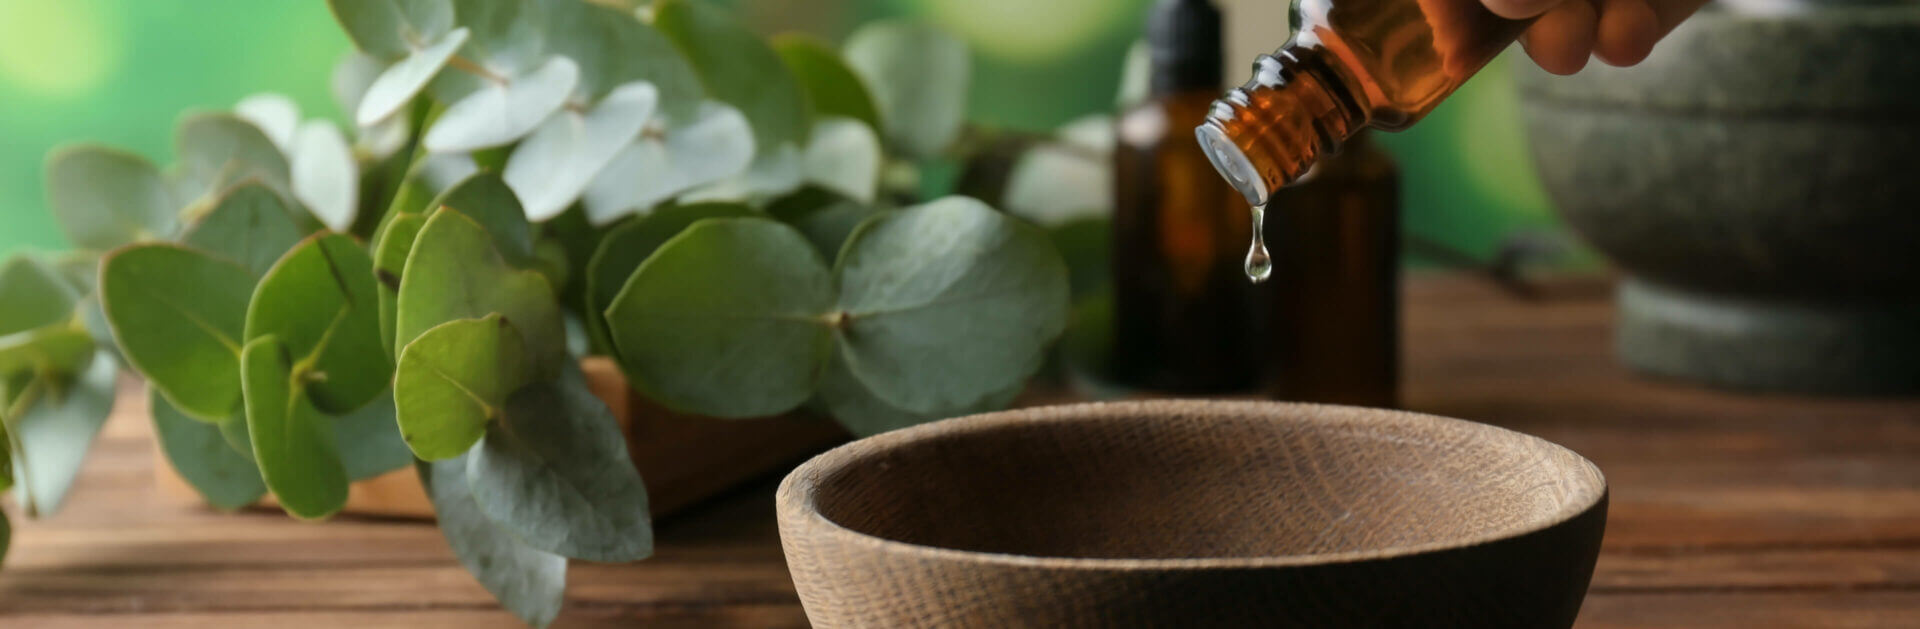 Essential oil dripping into a bowl